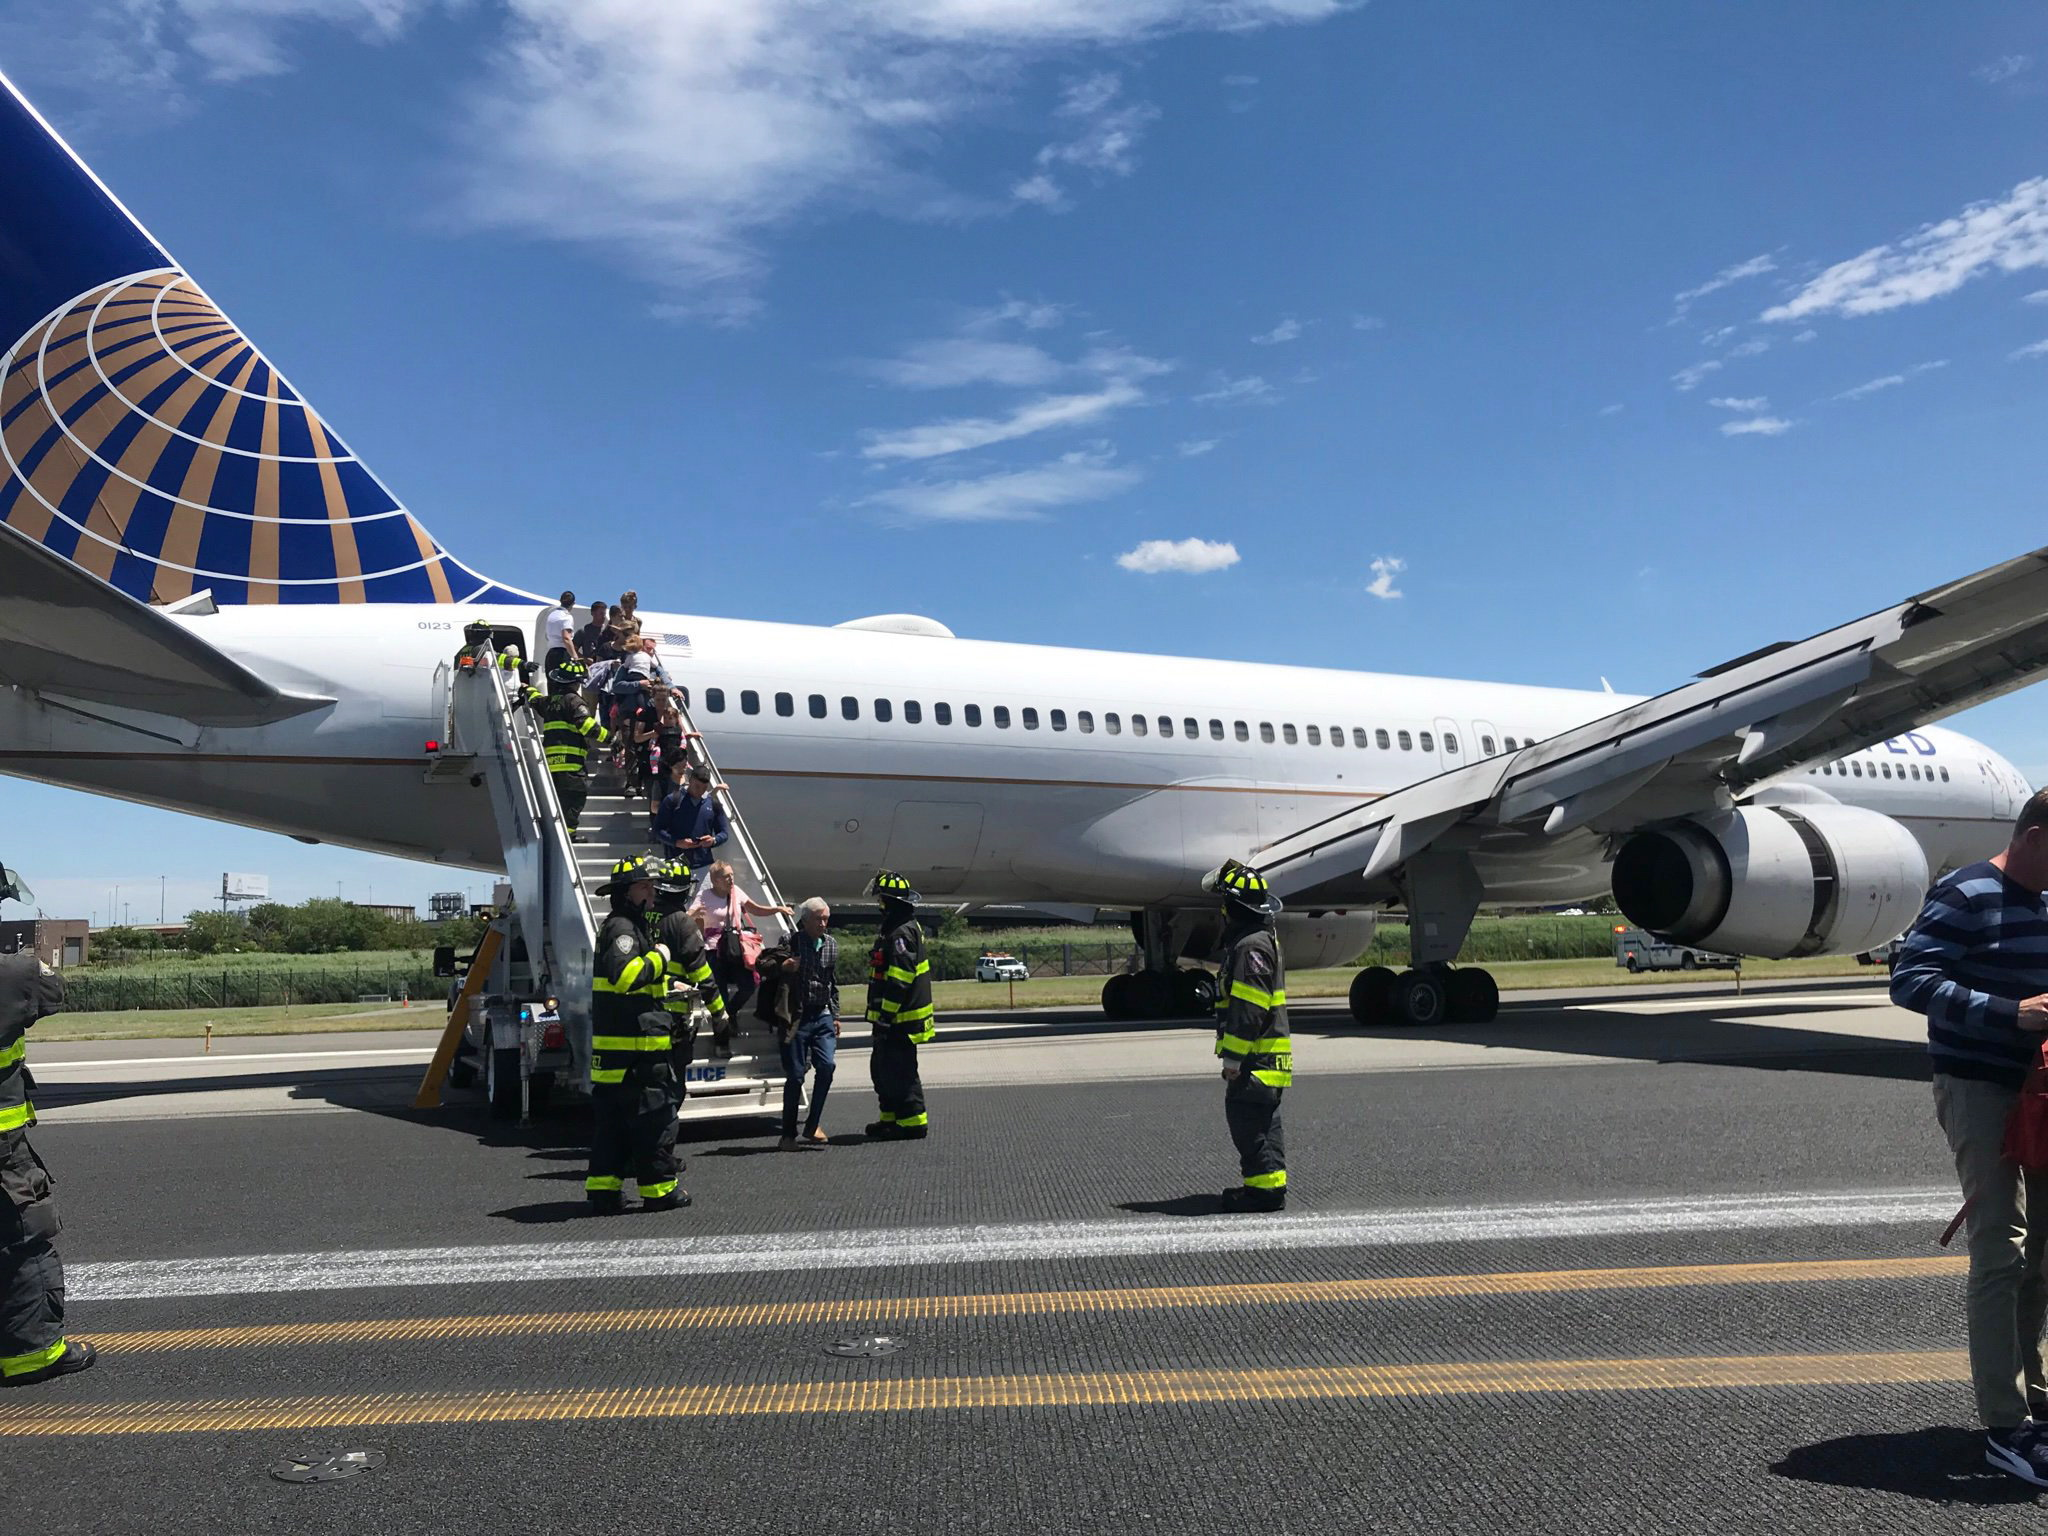 Tires Blow Out On United Airlines Plane During Newark Landing No One Injured National Globalnews Ca